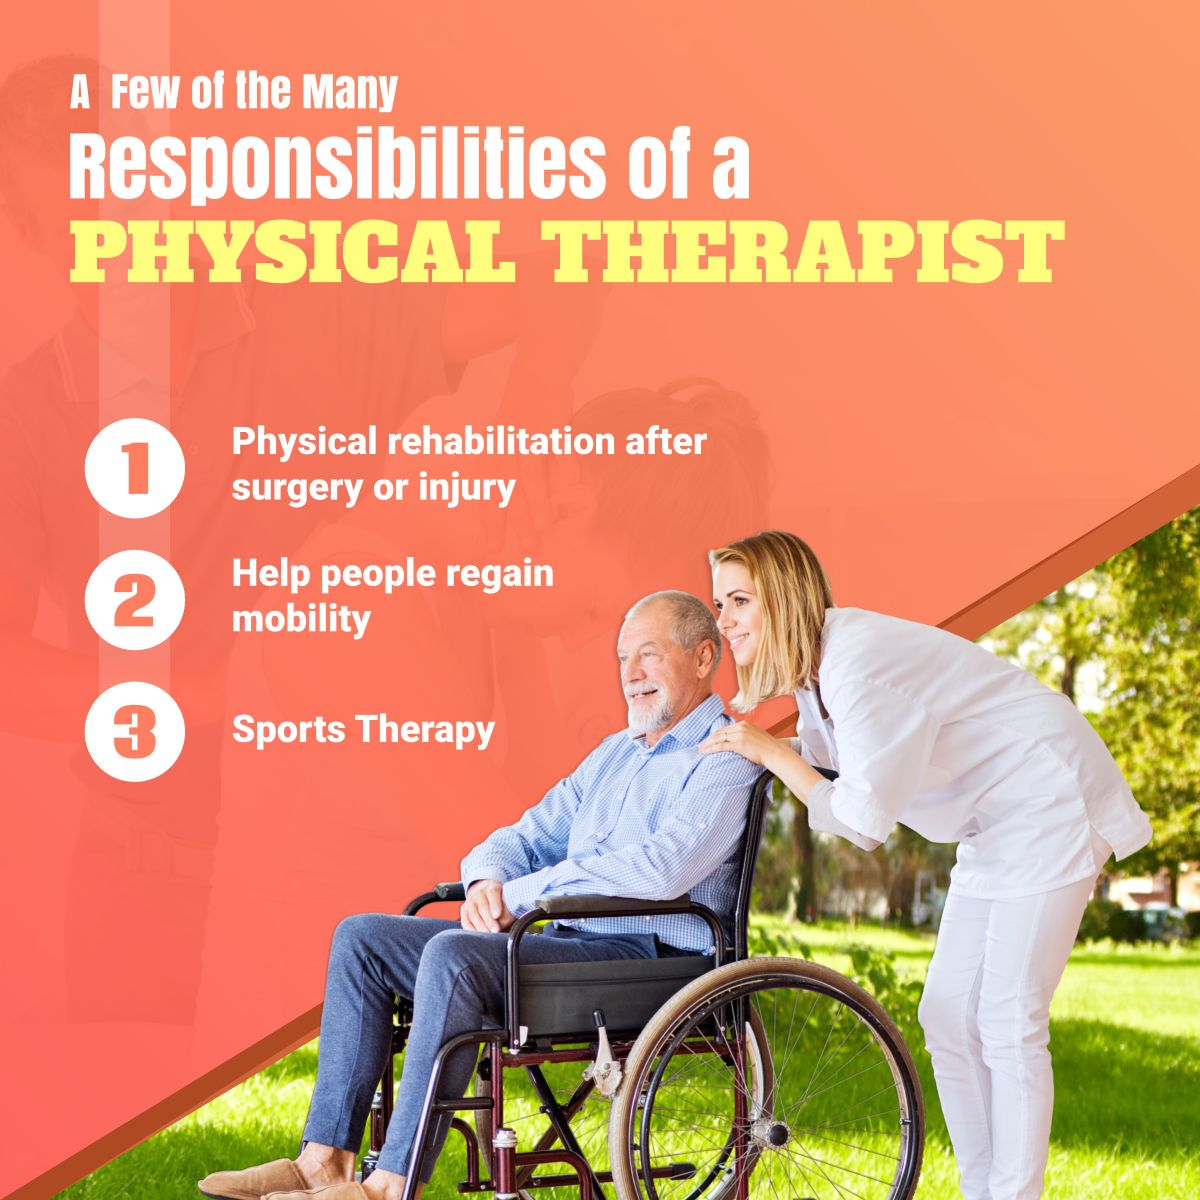 A Few of the Many Responsibilities of a Physical Therapist